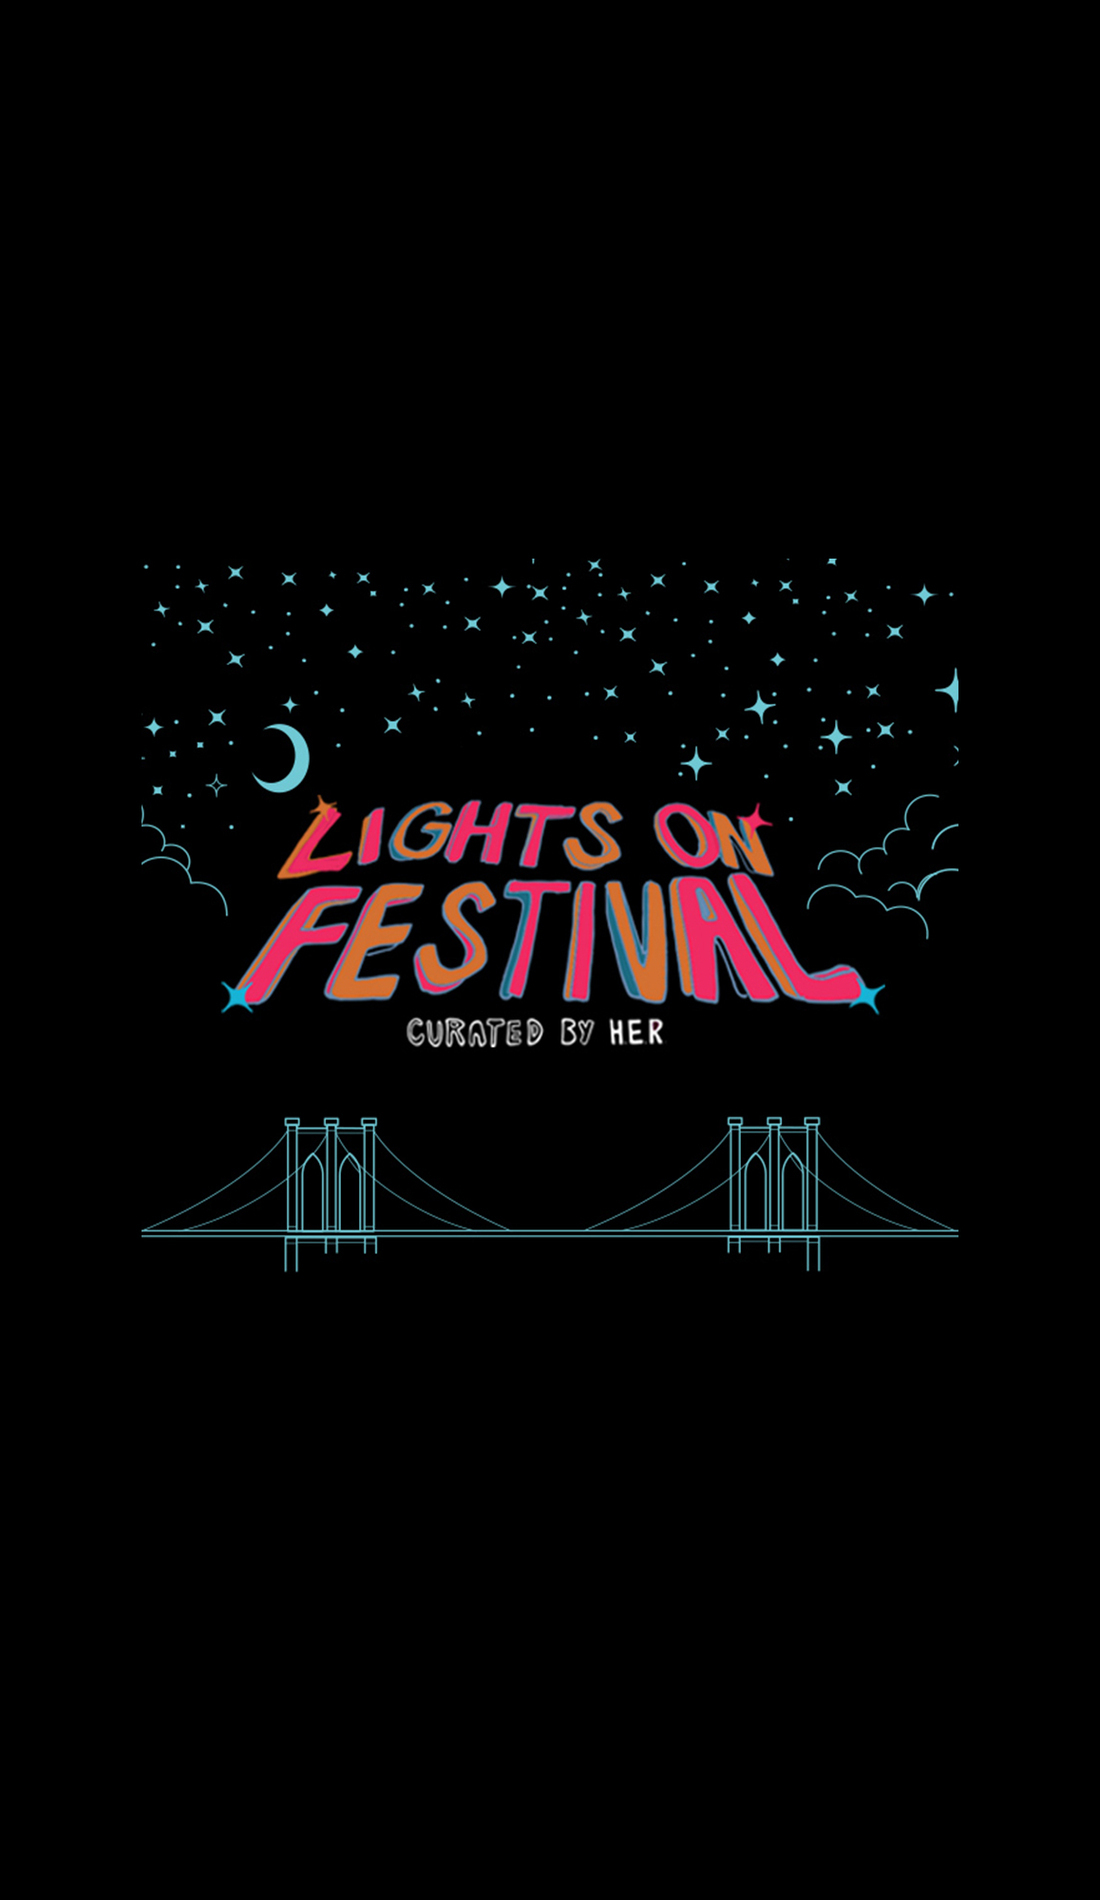 A Lights On Festival live event